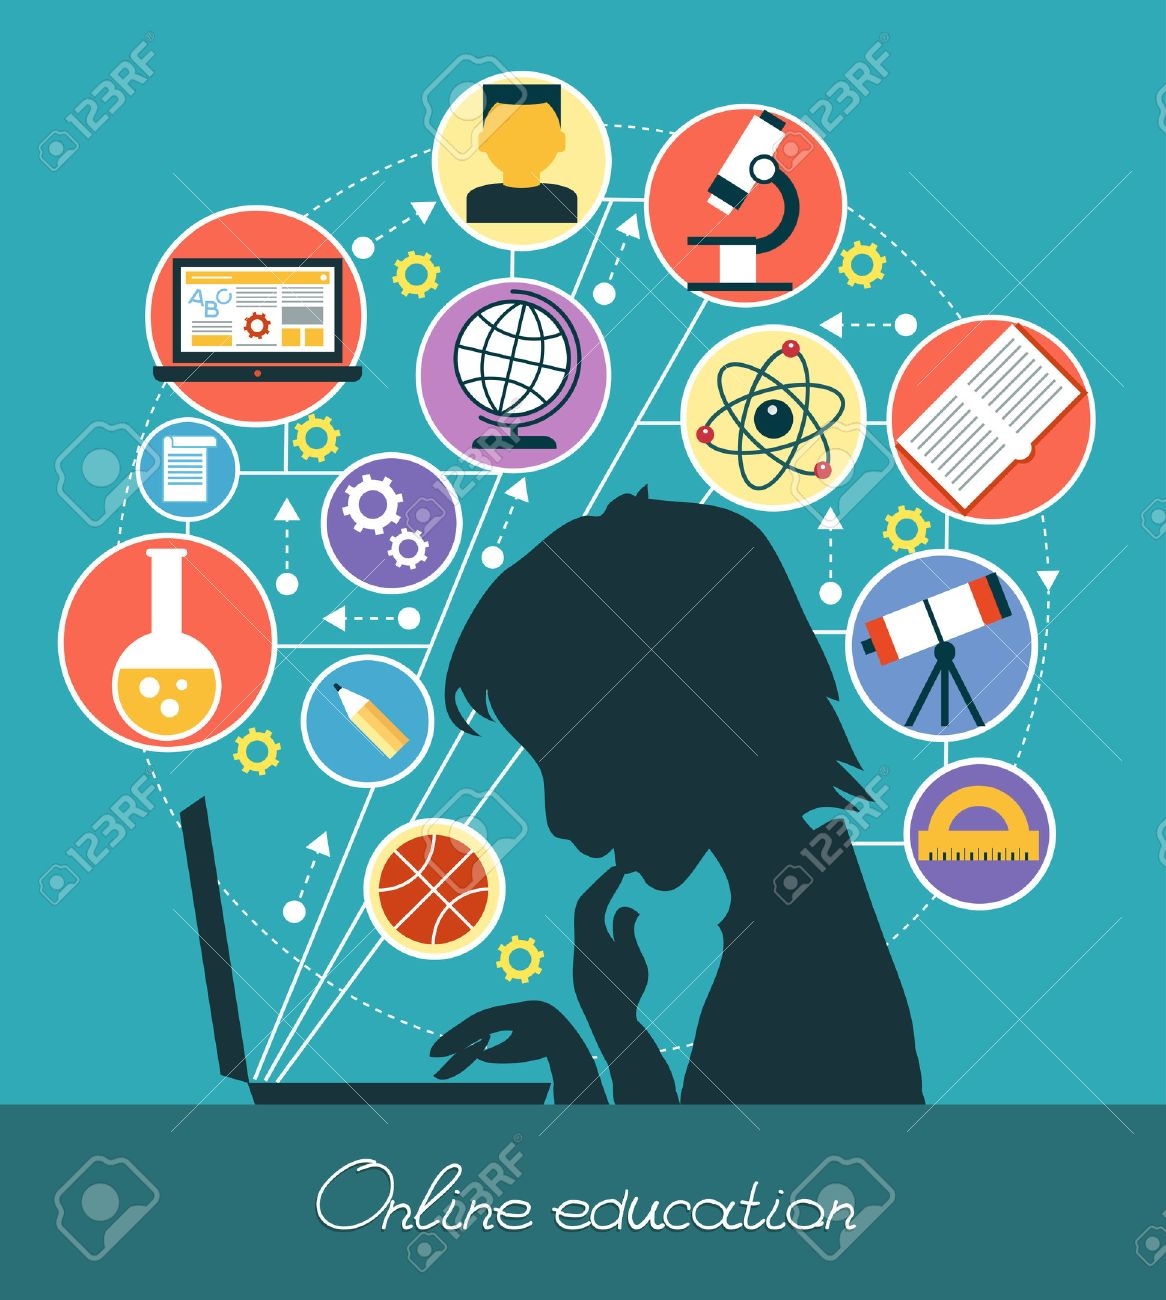 Icons education. Silhouette of a boy surrounded by icons of education. Concept online education. Standard-Bild - 47623944